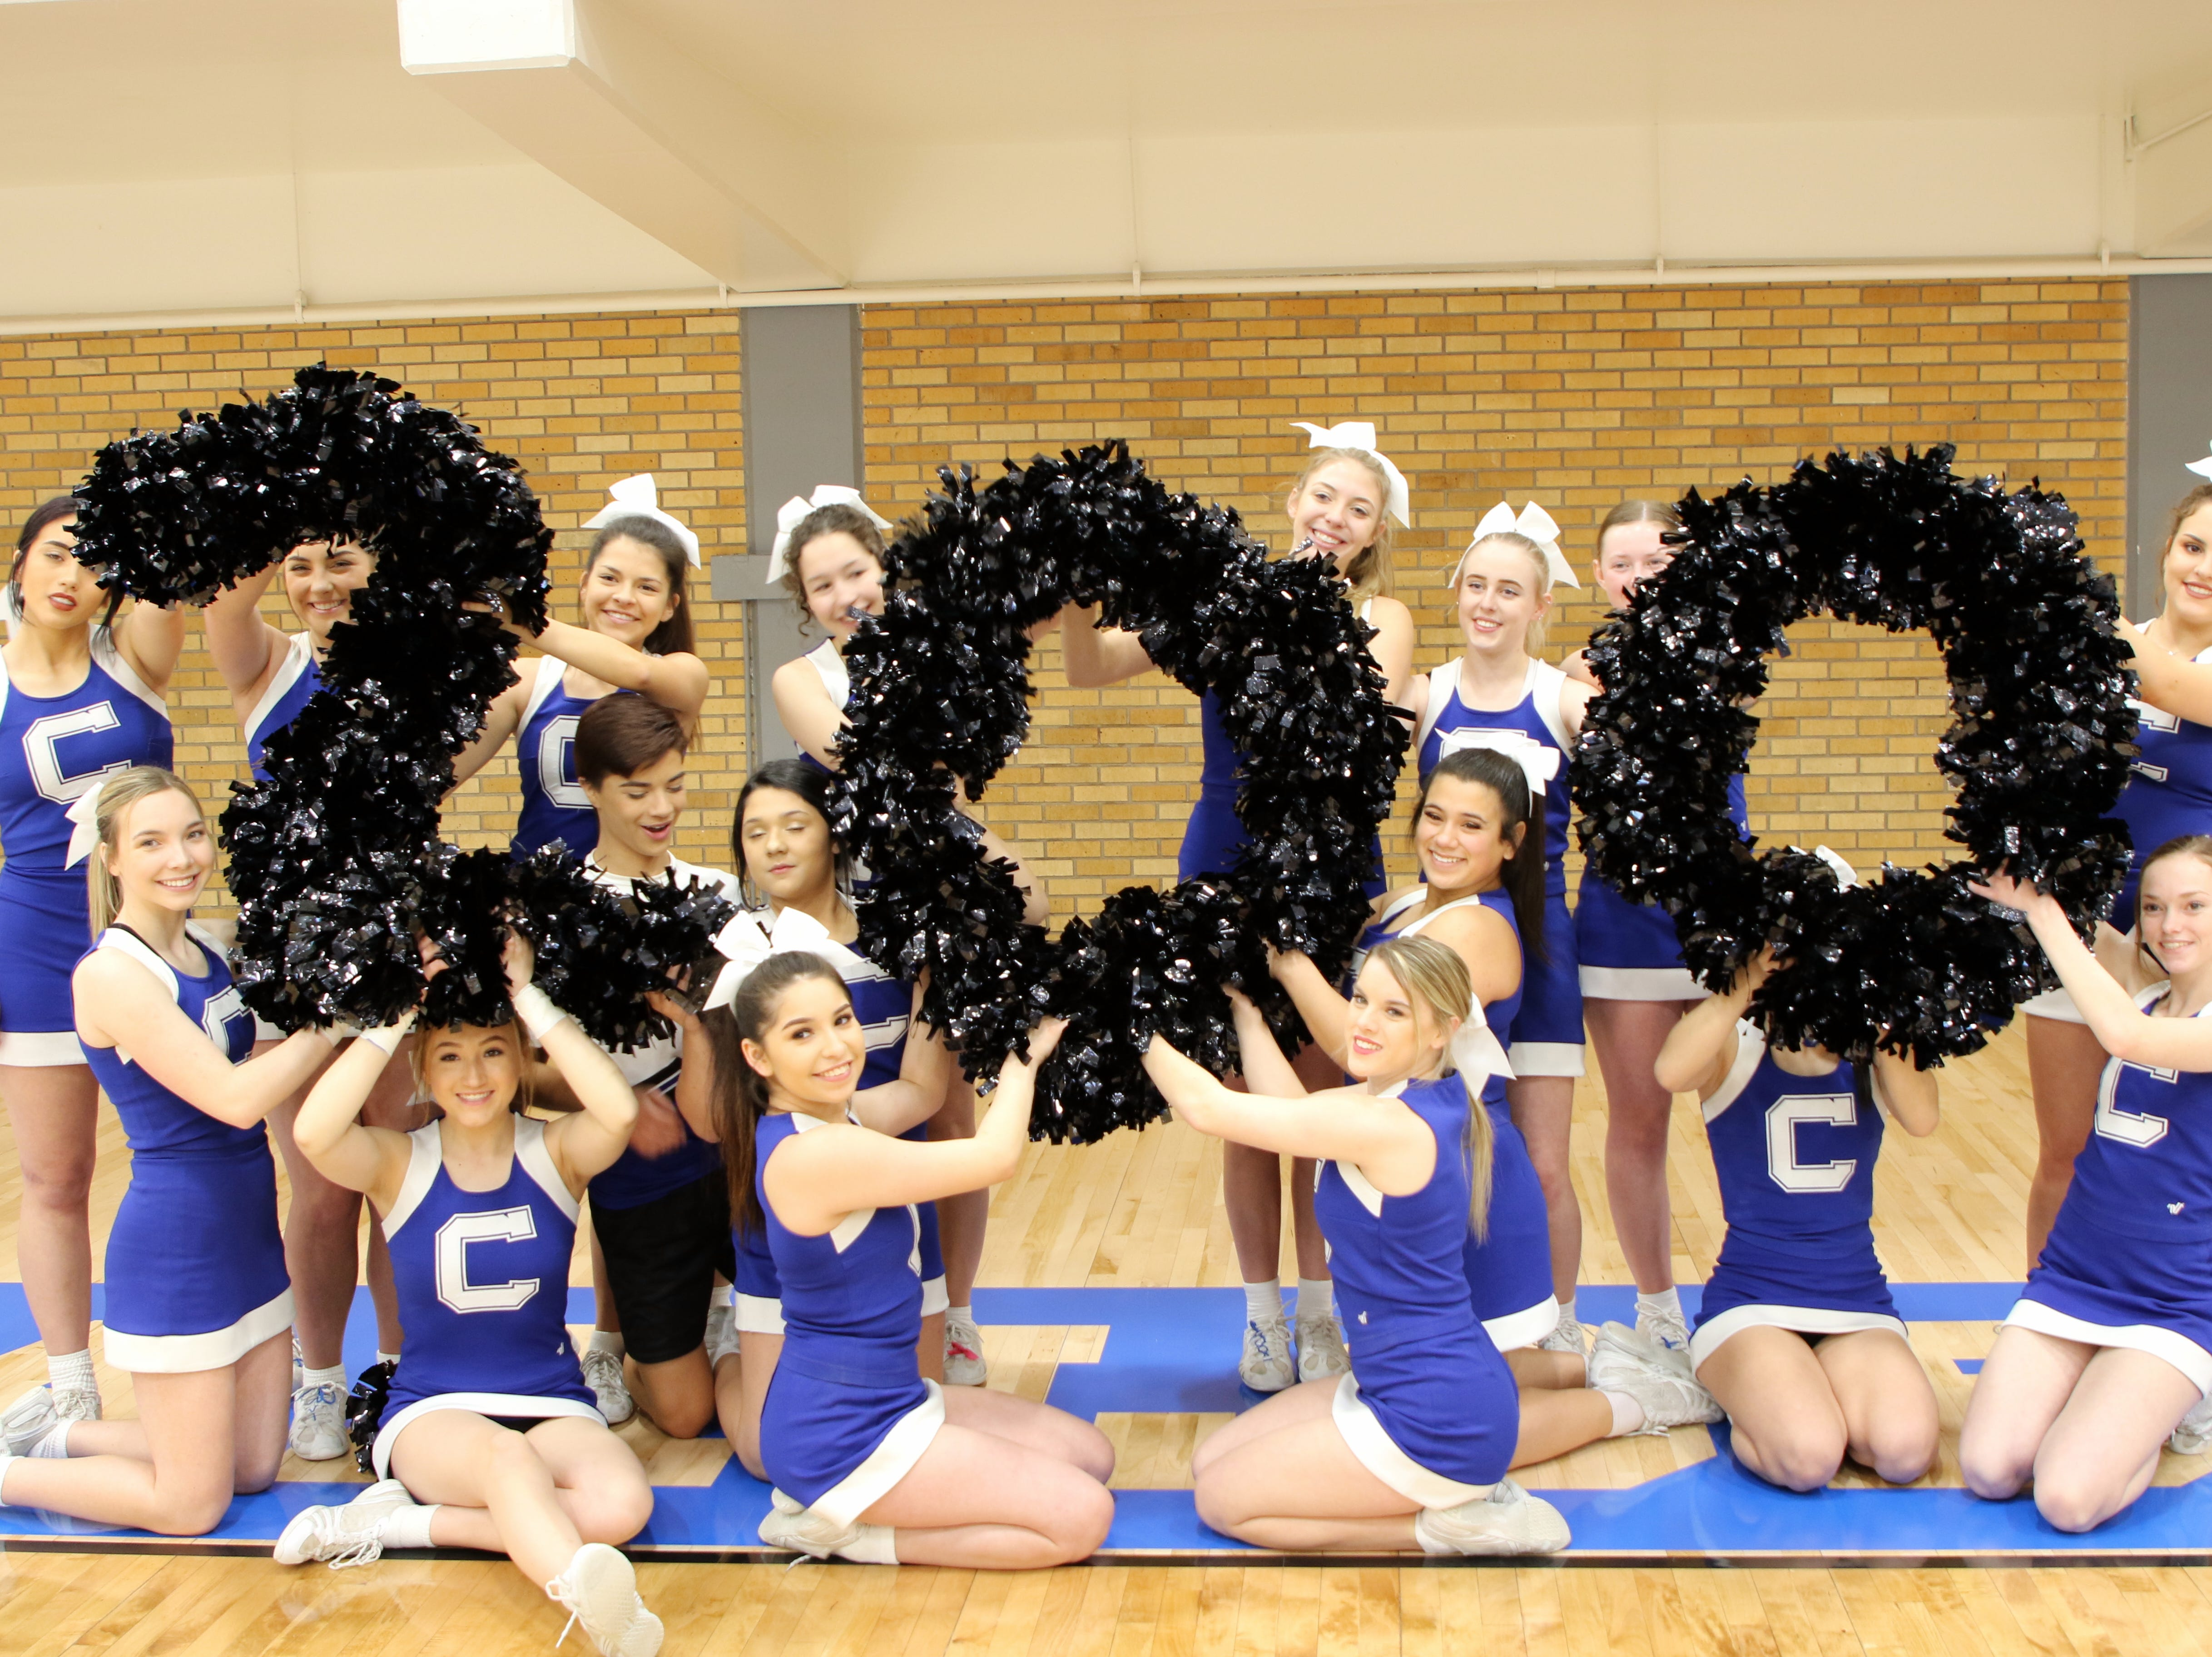 The Carlsbad cheerleaders display the number 200 to celebrate John Zumbrun's 200th win as the Cavegirls head coach. Carlsbad beat Centennial, 48-32.